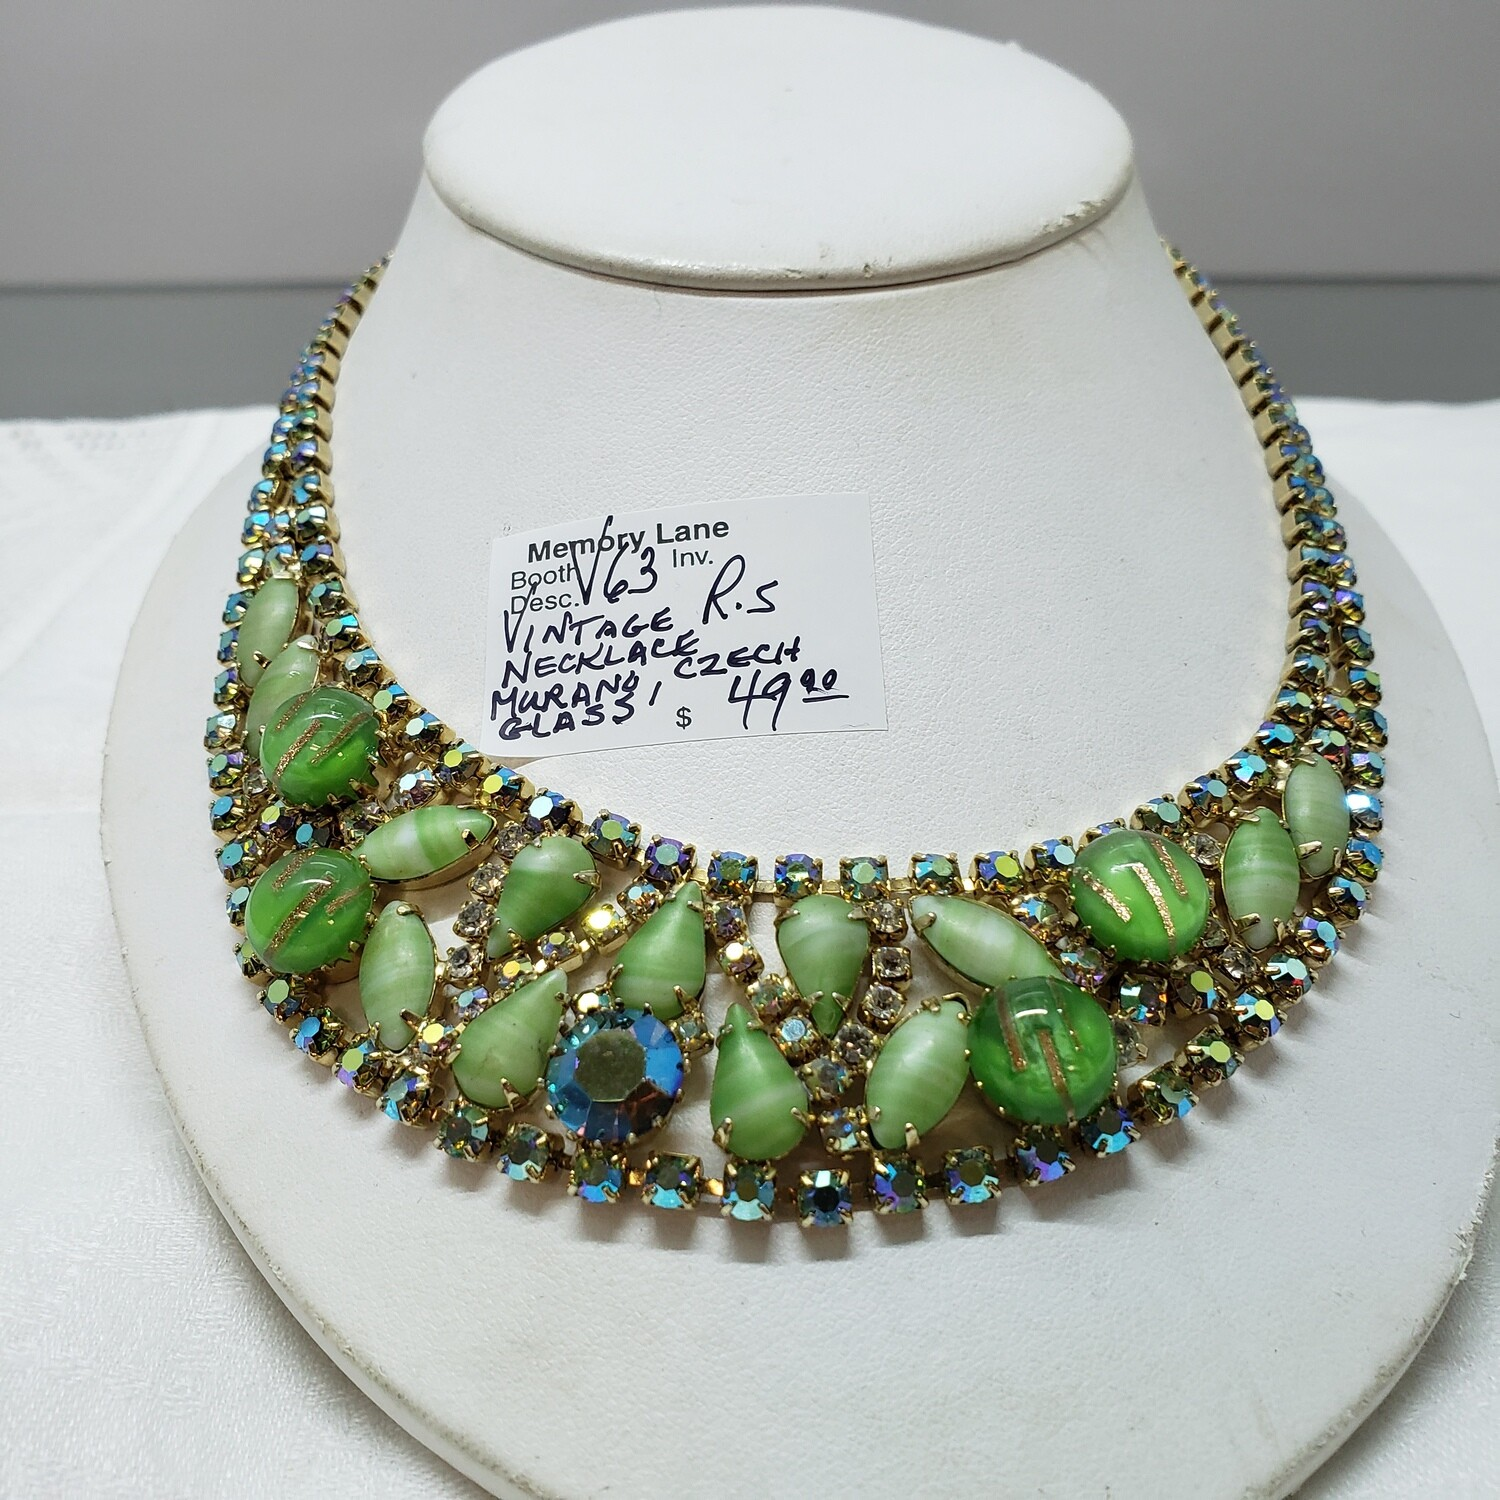 Vintage Necklace Murano glass